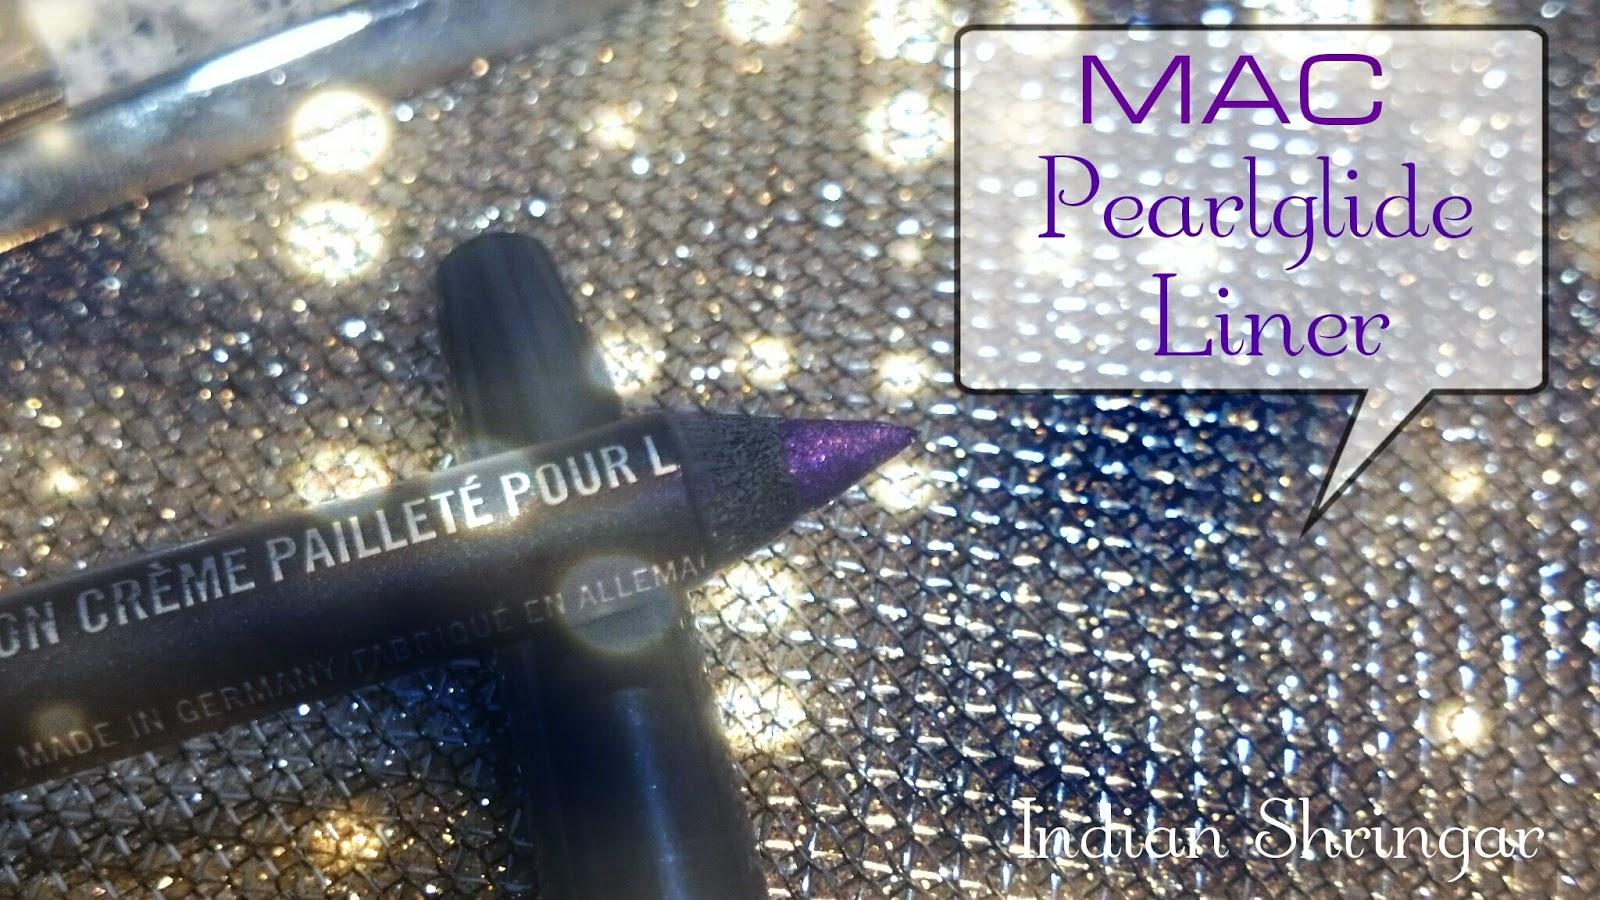 MAC Pearlglide Intense Eye Liner in Designer Purple - review and swatch